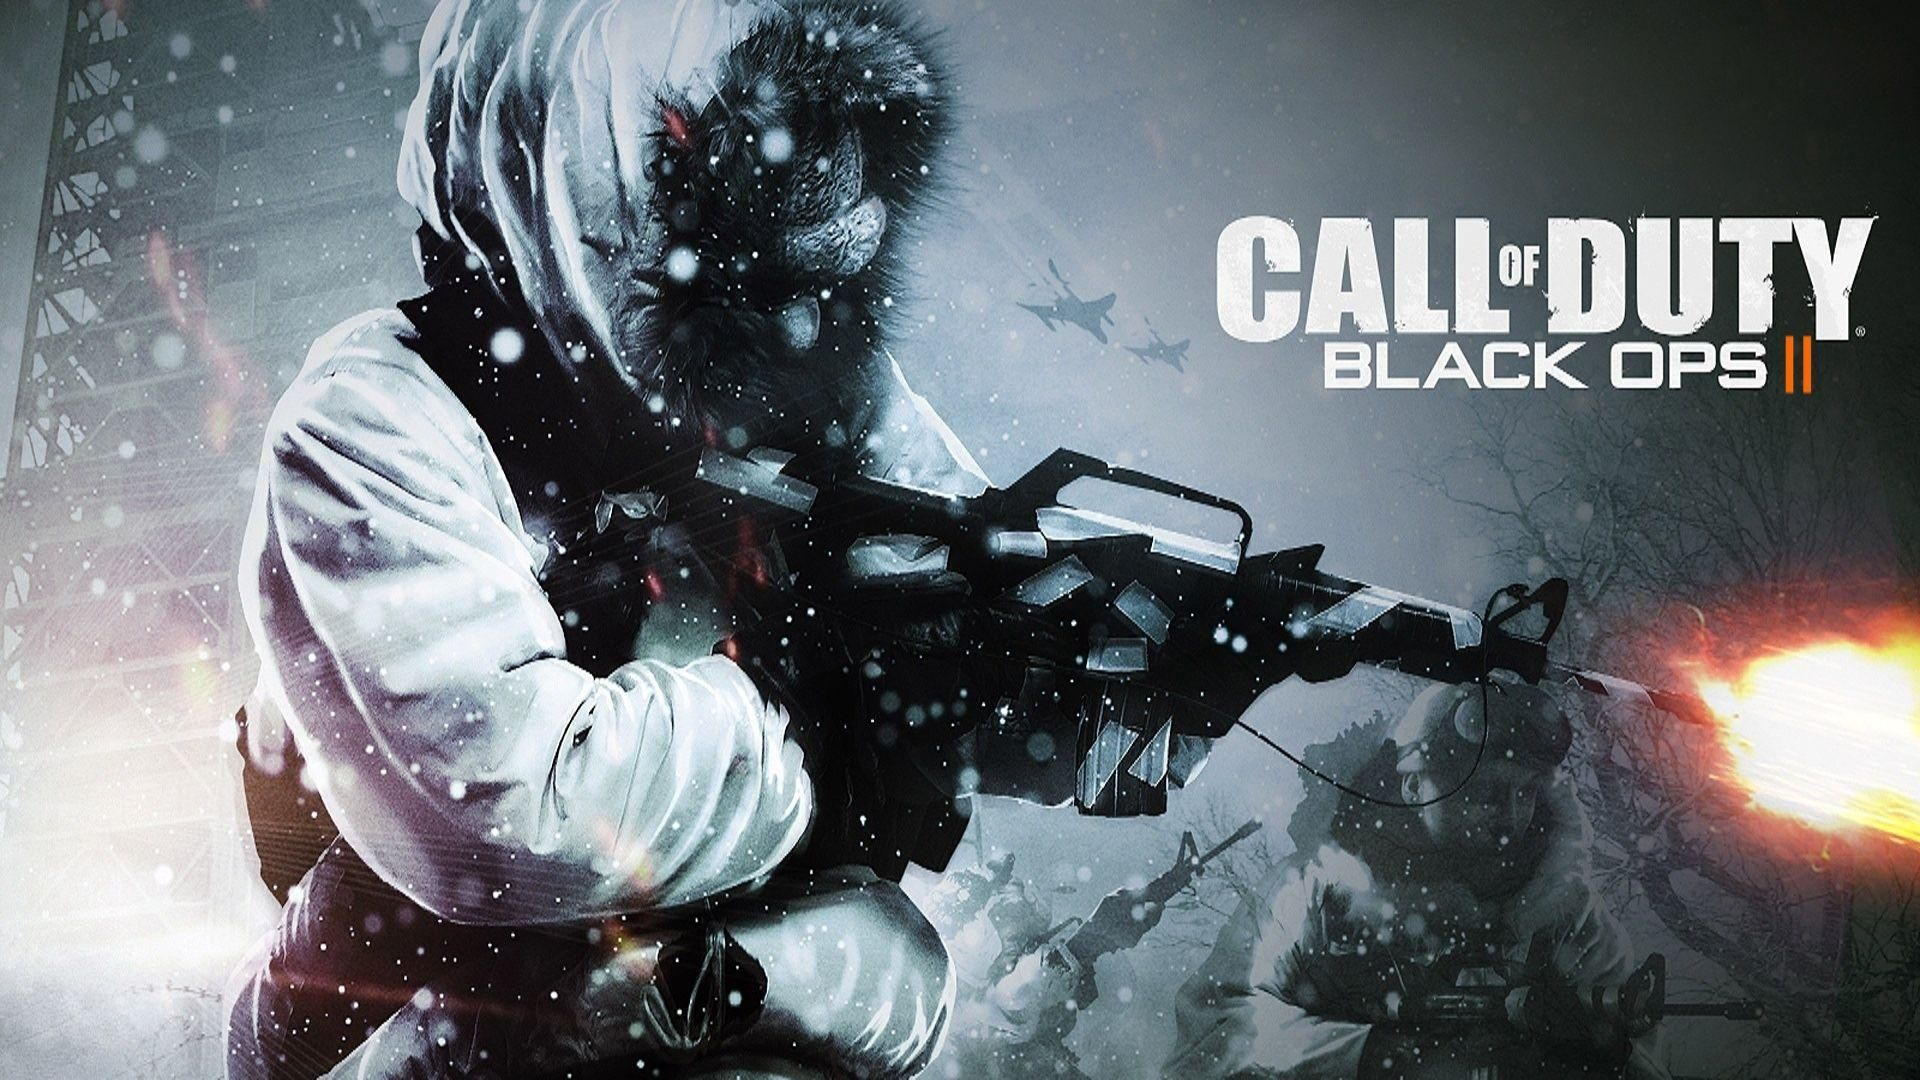 12 Games Like Call Of Duty 2 3 4 5 March 2020 Call Of Duty